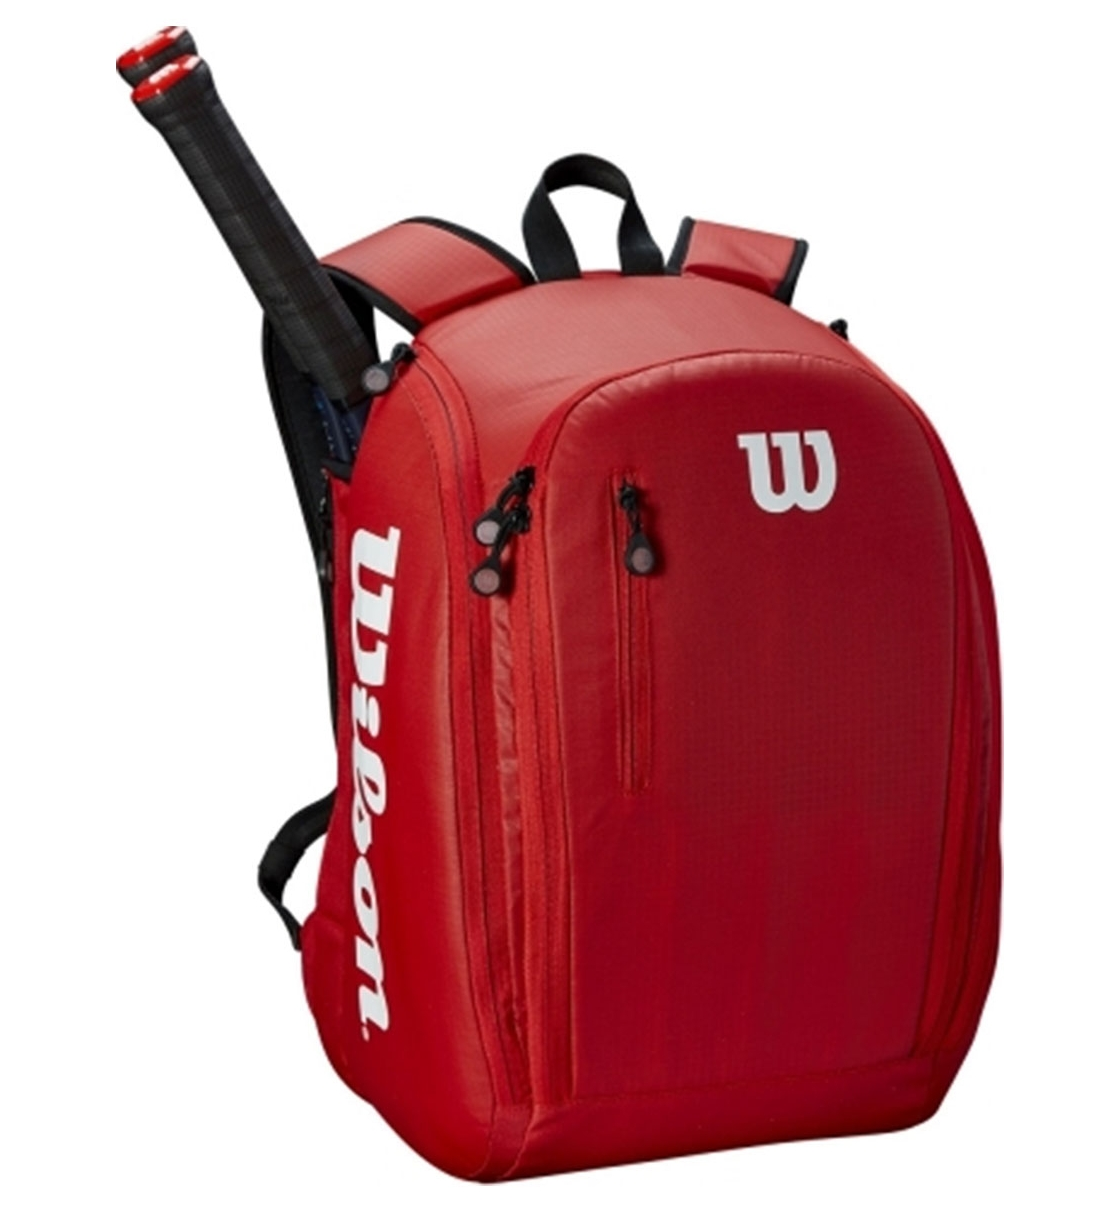 Wilson Fw19 Tour Backpack Rd Τσαντες